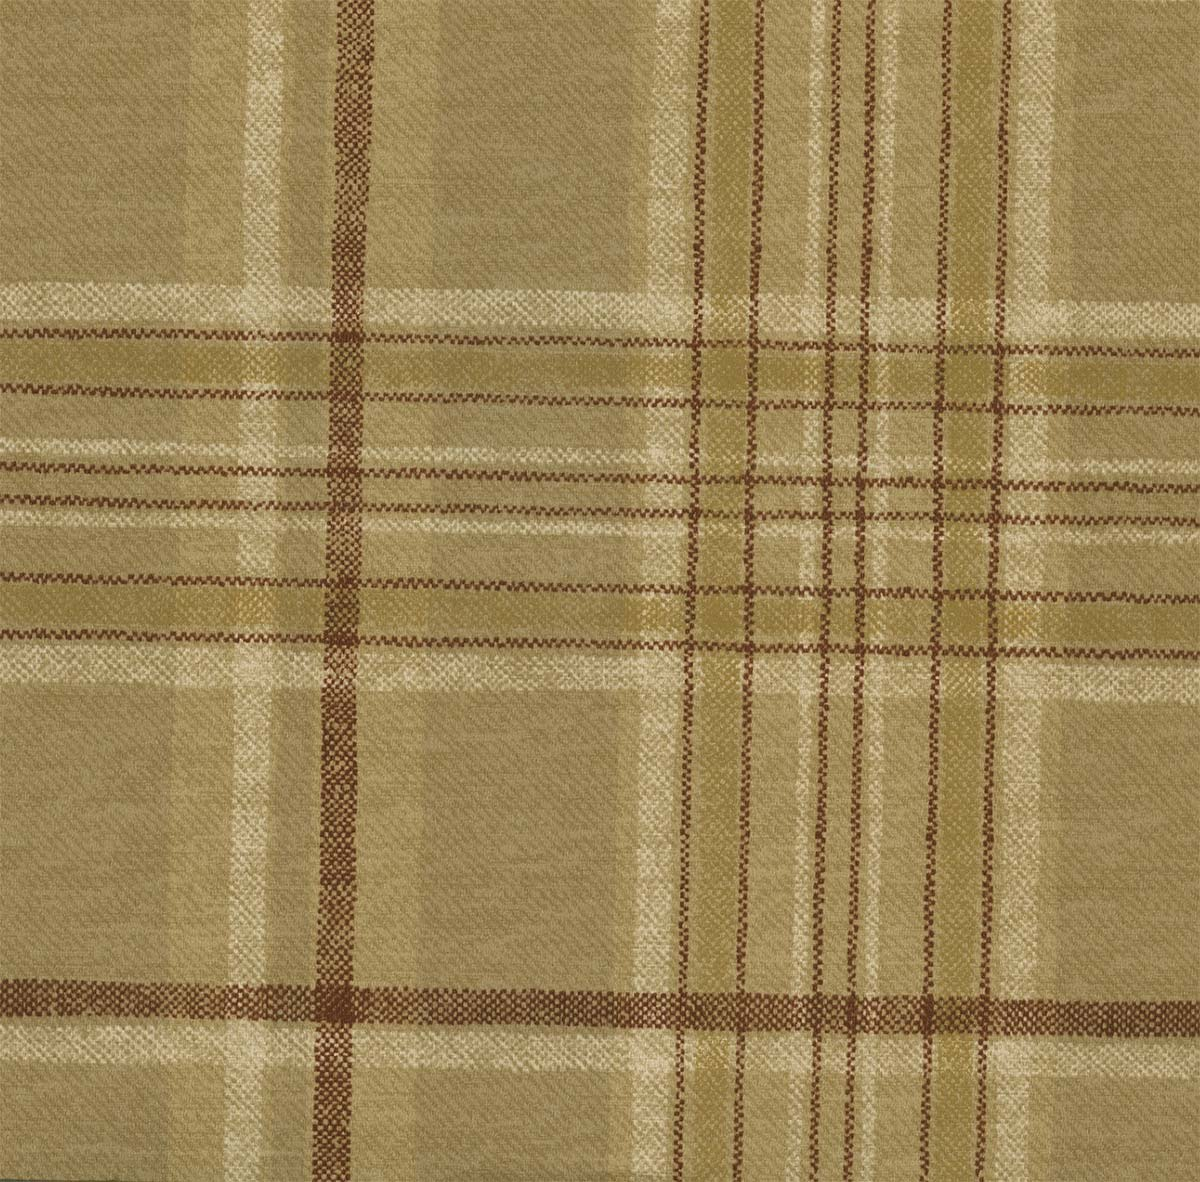 ... wallcoverings - Chesapeake- Outdoors - page 224 - Tartan - HTM494011